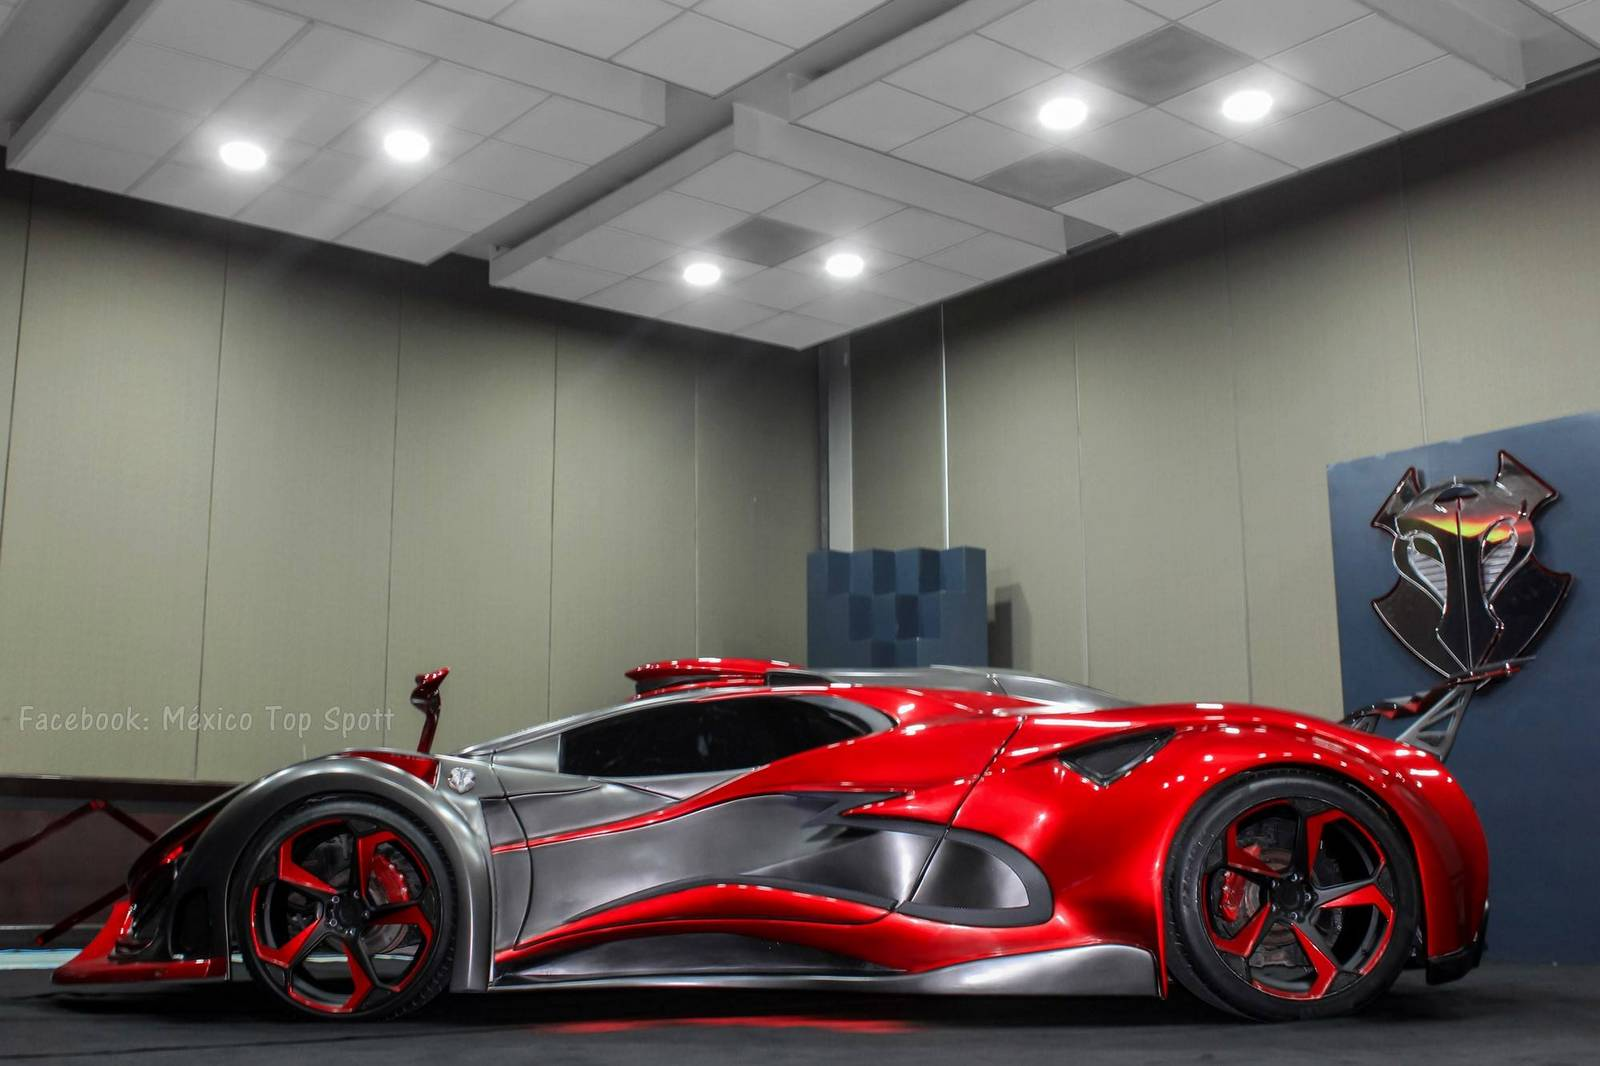 Rims For Cheap >> New Mexican Inferno Supercar Revealed with 1,400 hp - GTspirit